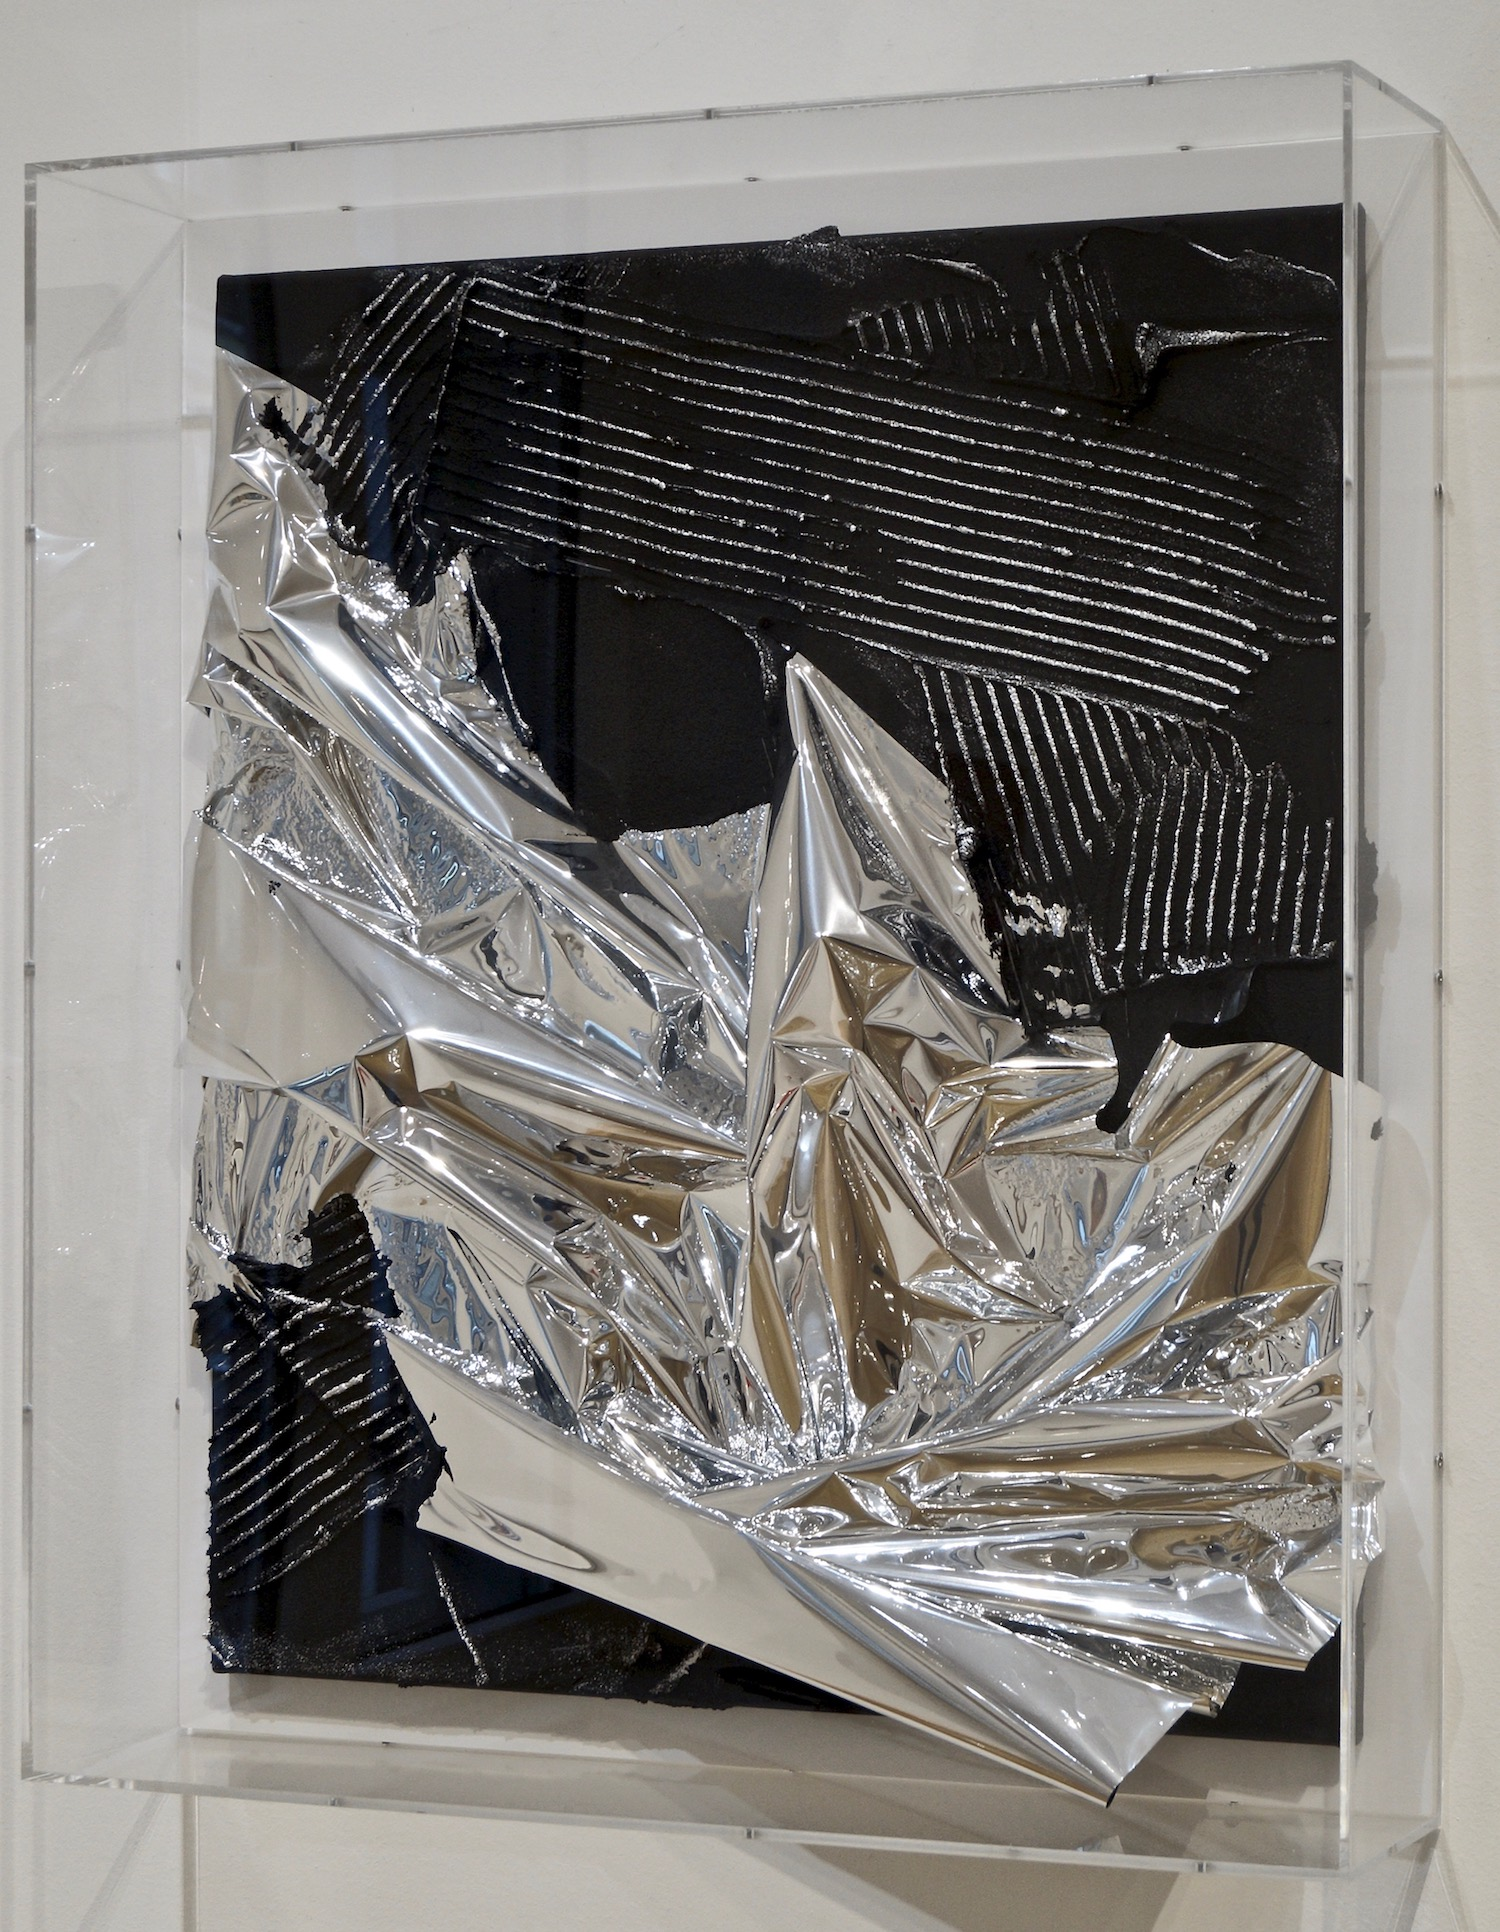 Anselm Reyle Untitled, 2007 mixed media on canvas in acrylic box 74 x 63 x 14 cm | 29 1/4 x 24 3/4 x 5 1/2 in ARE/M 1